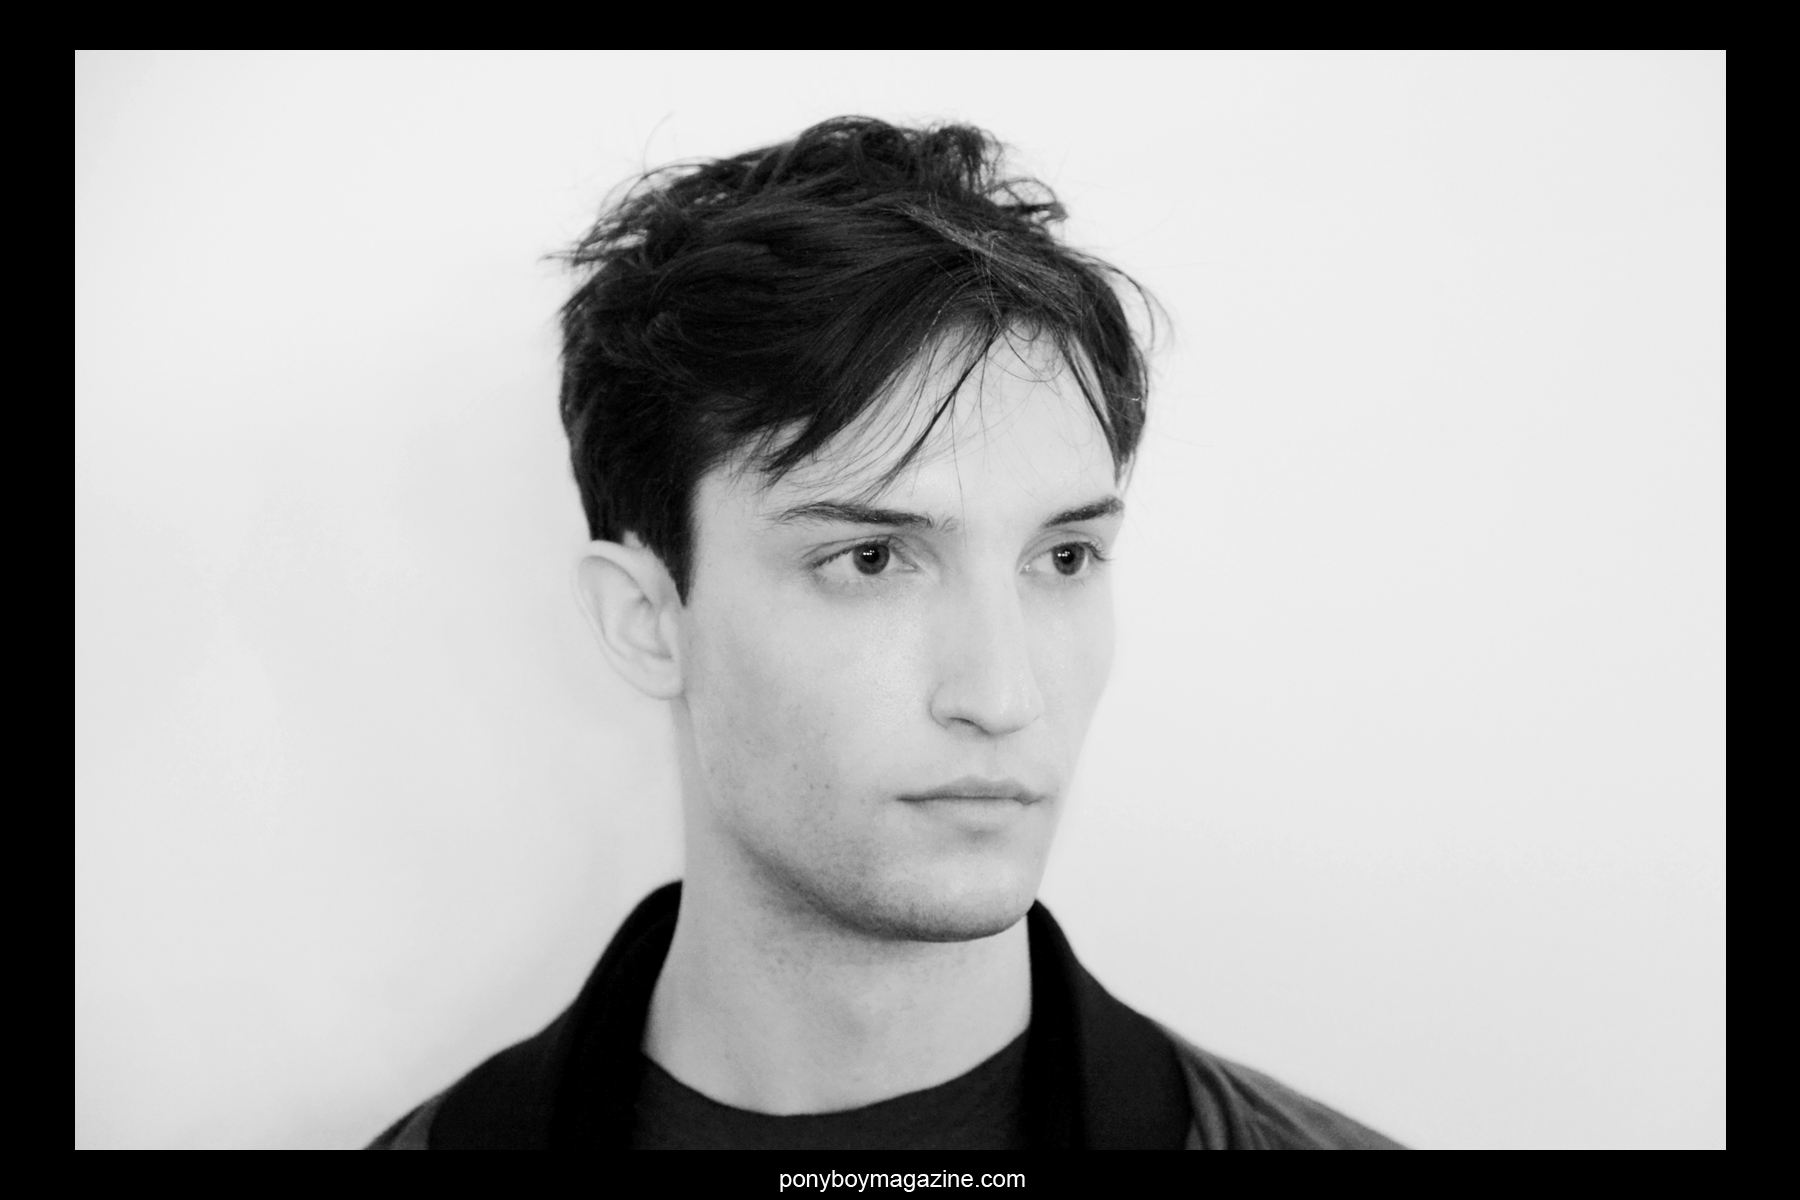 Portrait of male model backstage at the Patrik Ervell A/W 2014 menswear collection, photographed by Alexander Thompson for Ponyboy Magazine.